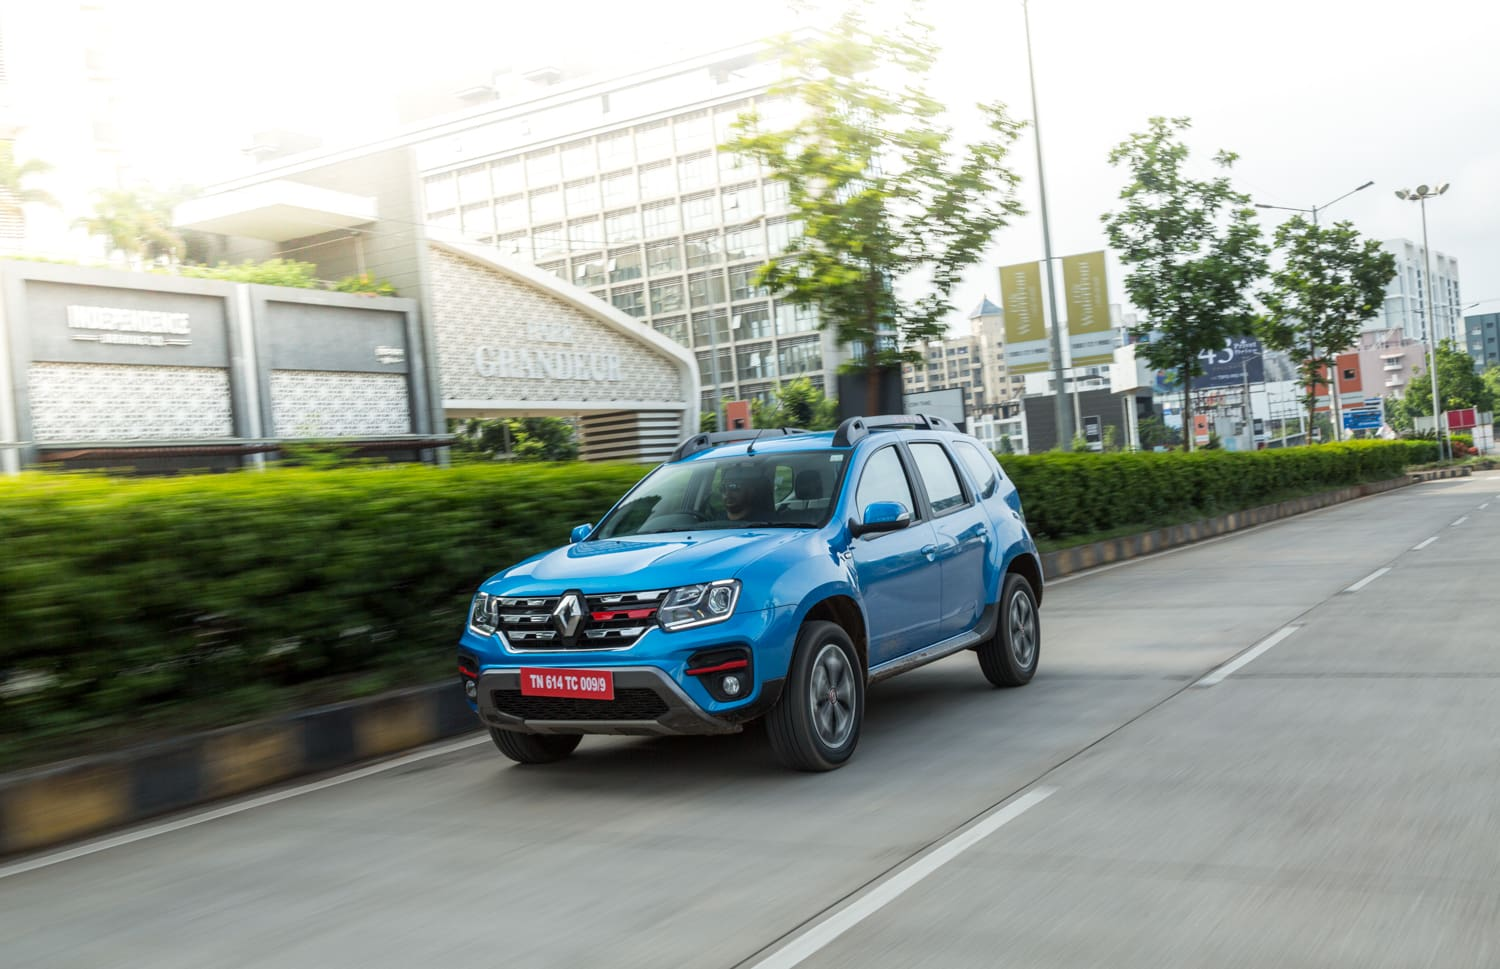 Renault Duster Turbo-manual Fuel Efficiency Tested: Claimed vs Real